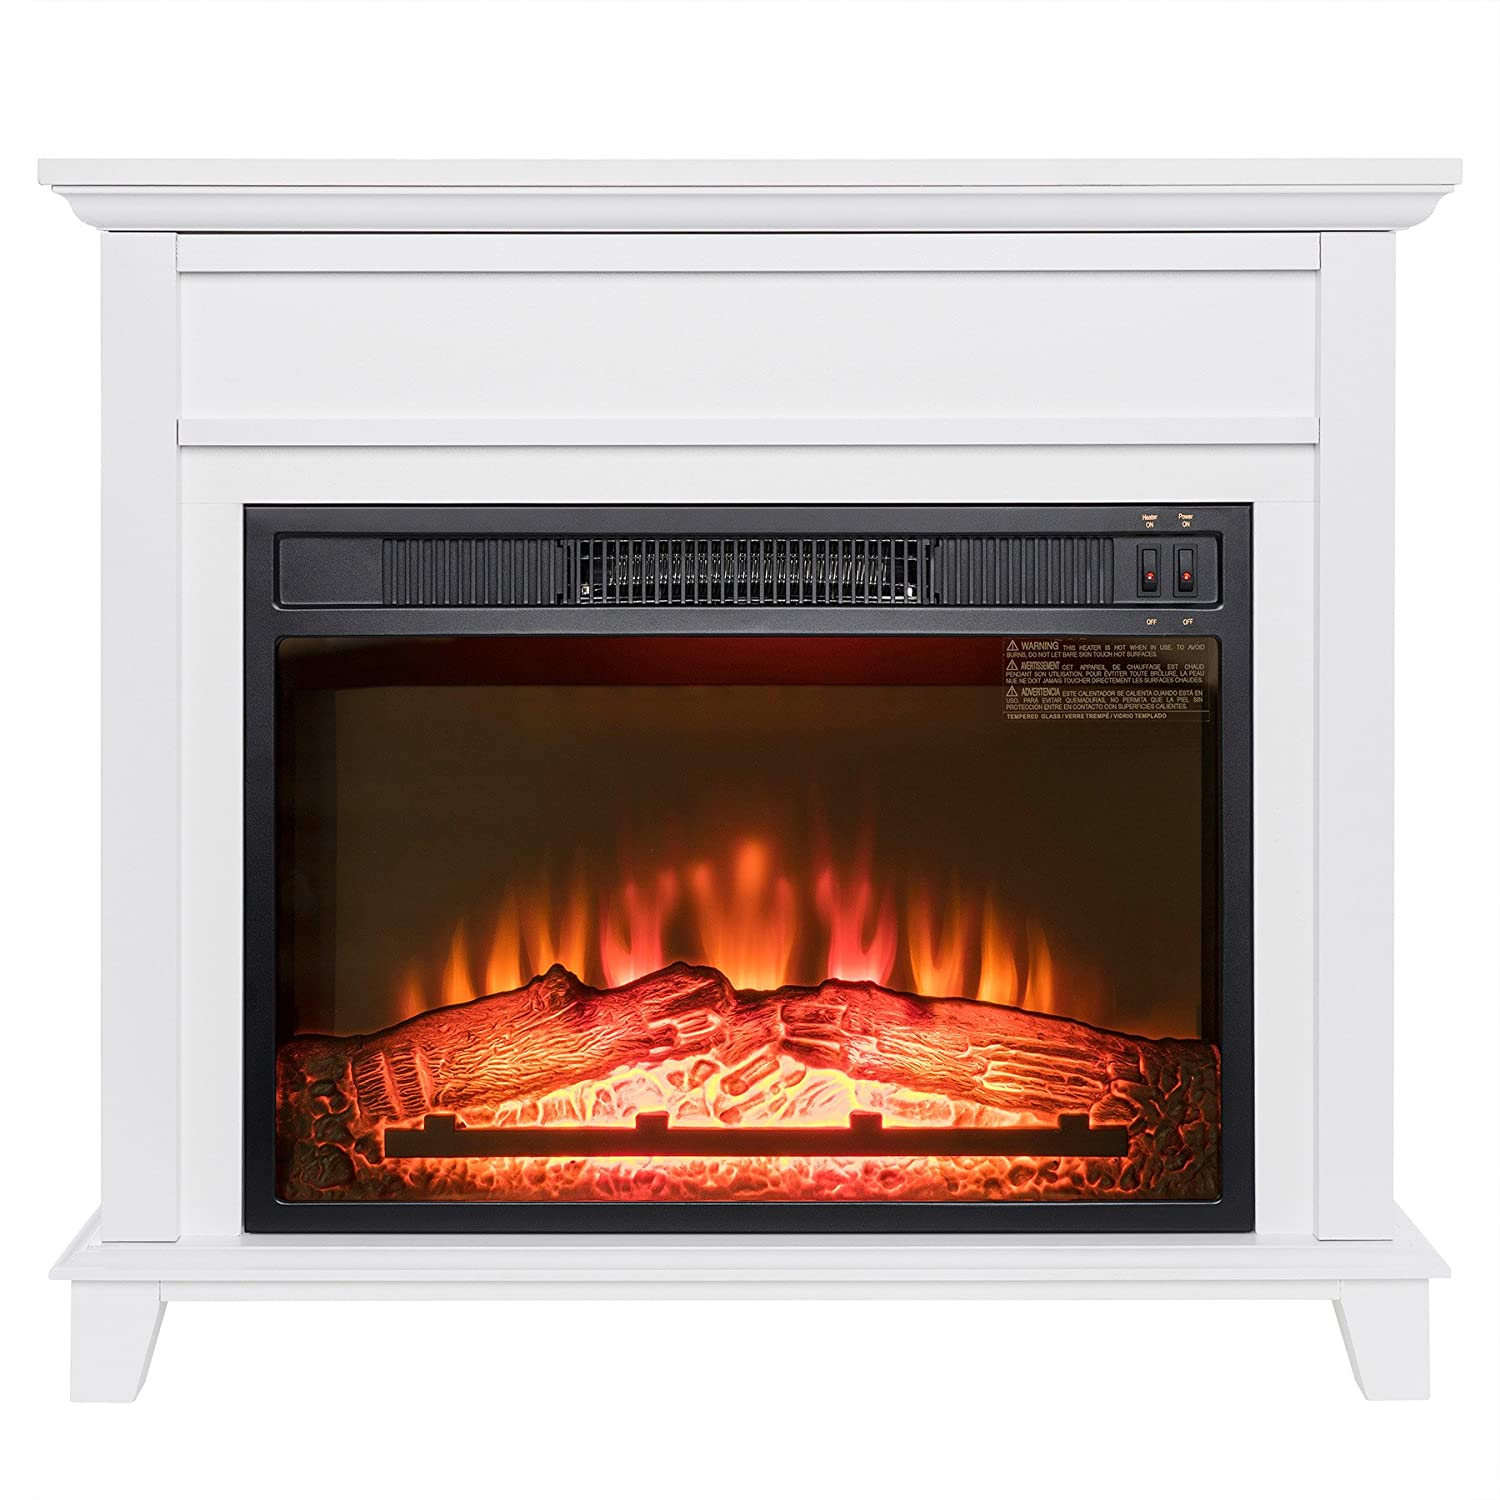 "Amazon.com: Golden Vantage 32"" Freestanding White Wood Finish Electric Fireplace  Stove Heater: Kitchen & Dining"